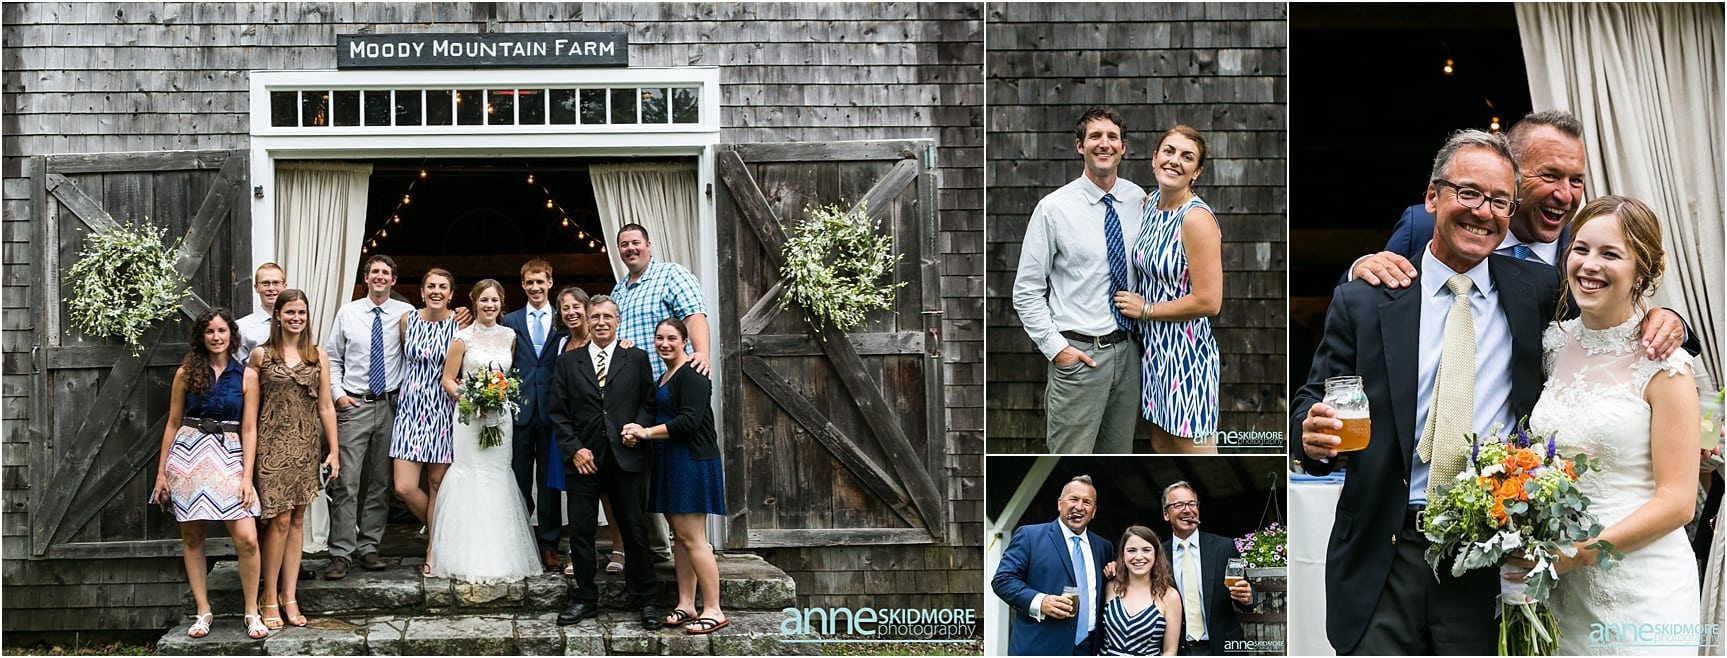 moody_mountain_farm_wedding__058